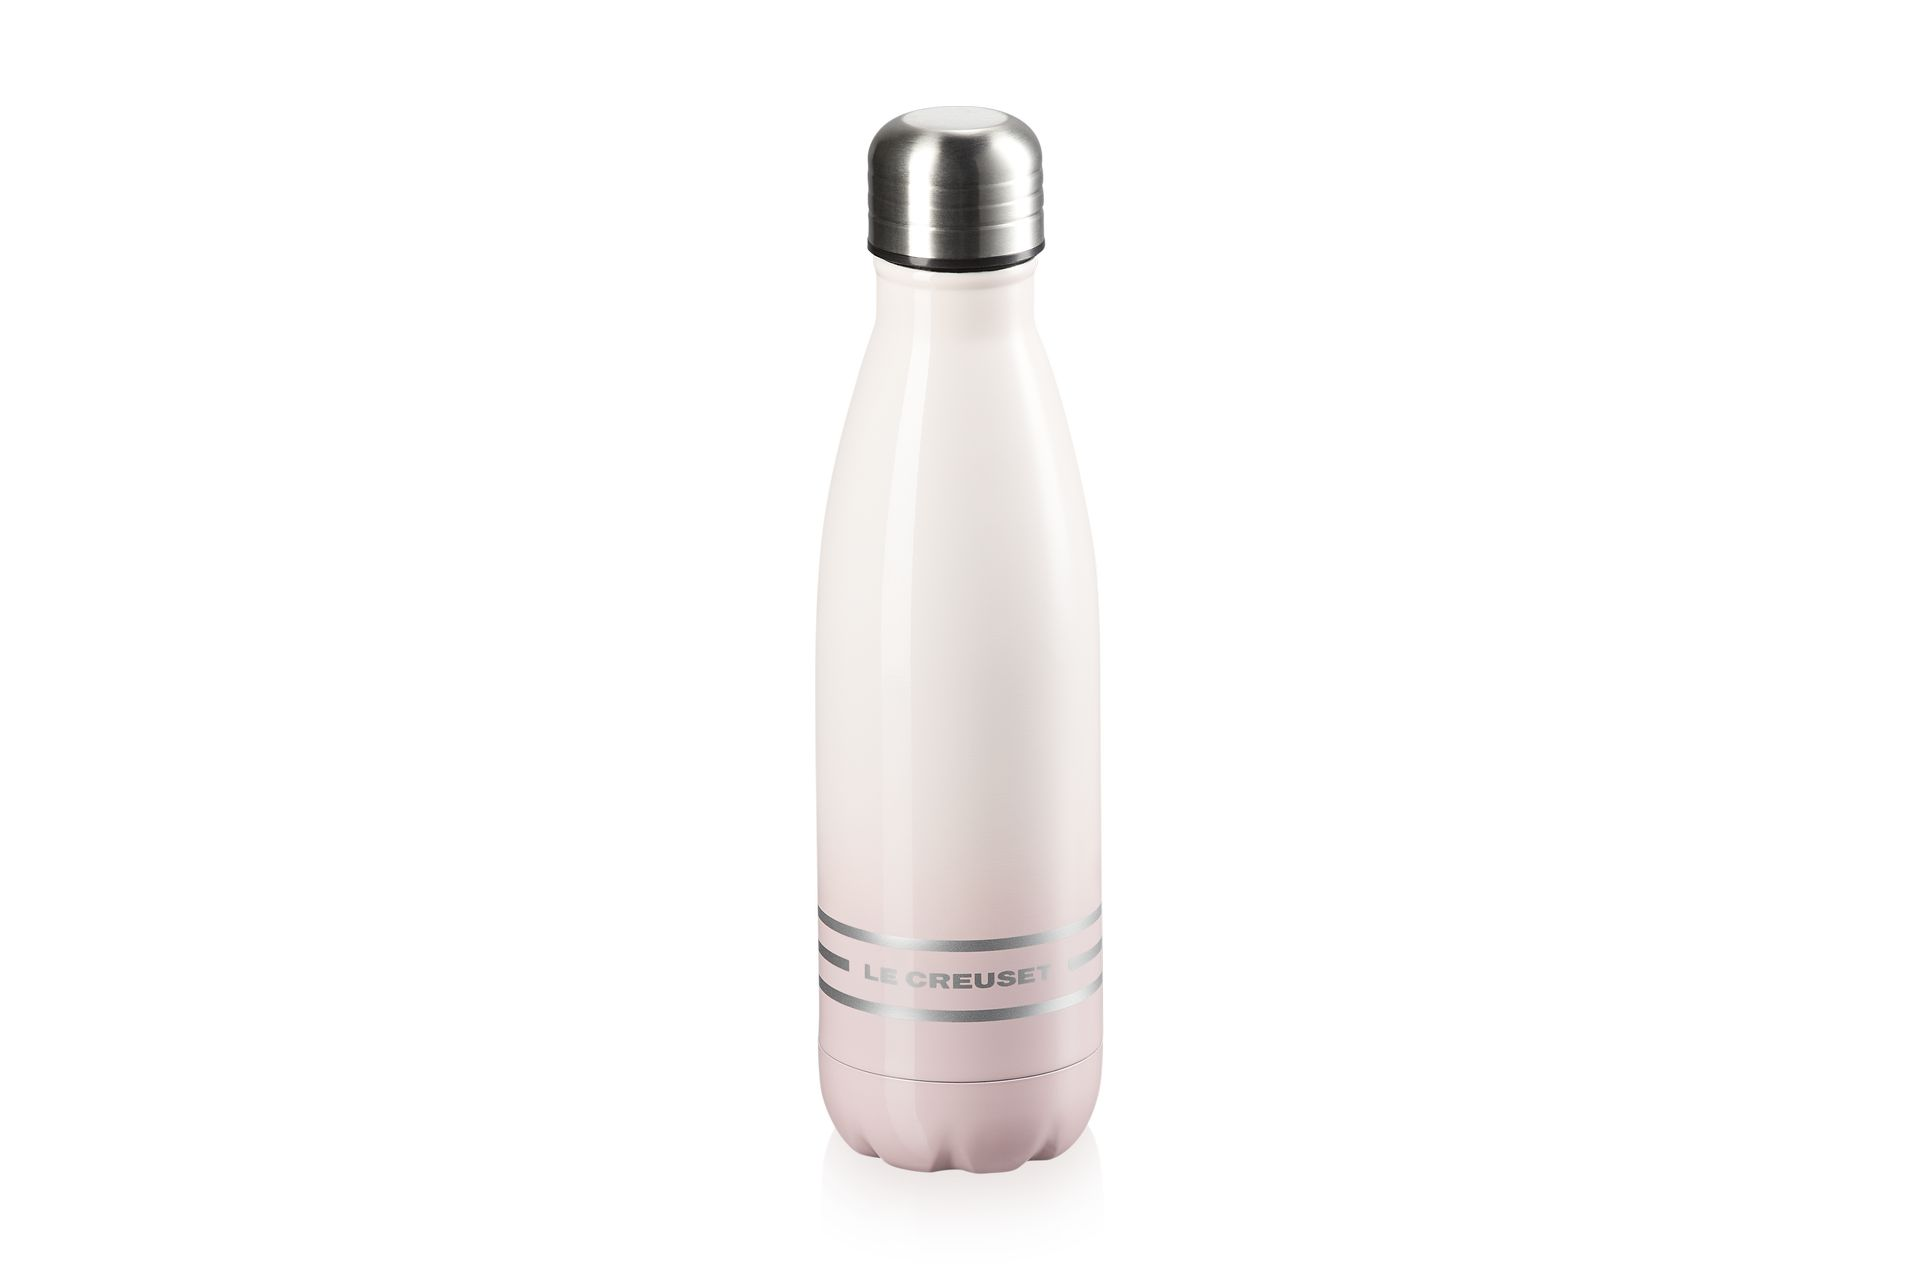 Le Creuset Trinkflasche 500 ml Shell Pink